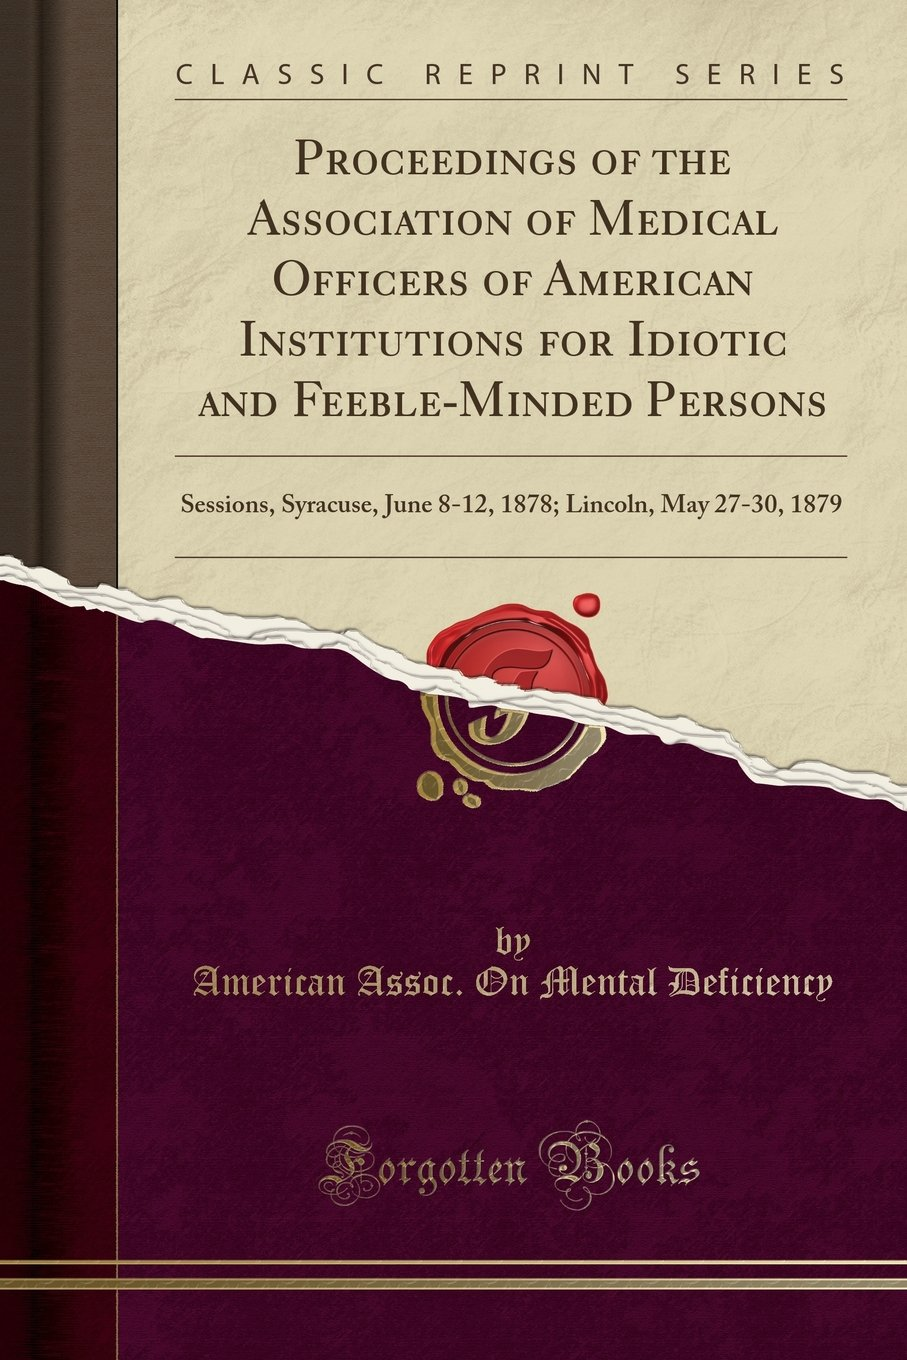 Download Proceedings of the Association of Medical Officers of American Institutions for Idiotic and Feeble-Minded Persons: Sessions, Syracuse, June 8-12, 1878; Lincoln, May 27-30, 1879 (Classic Reprint) PDF